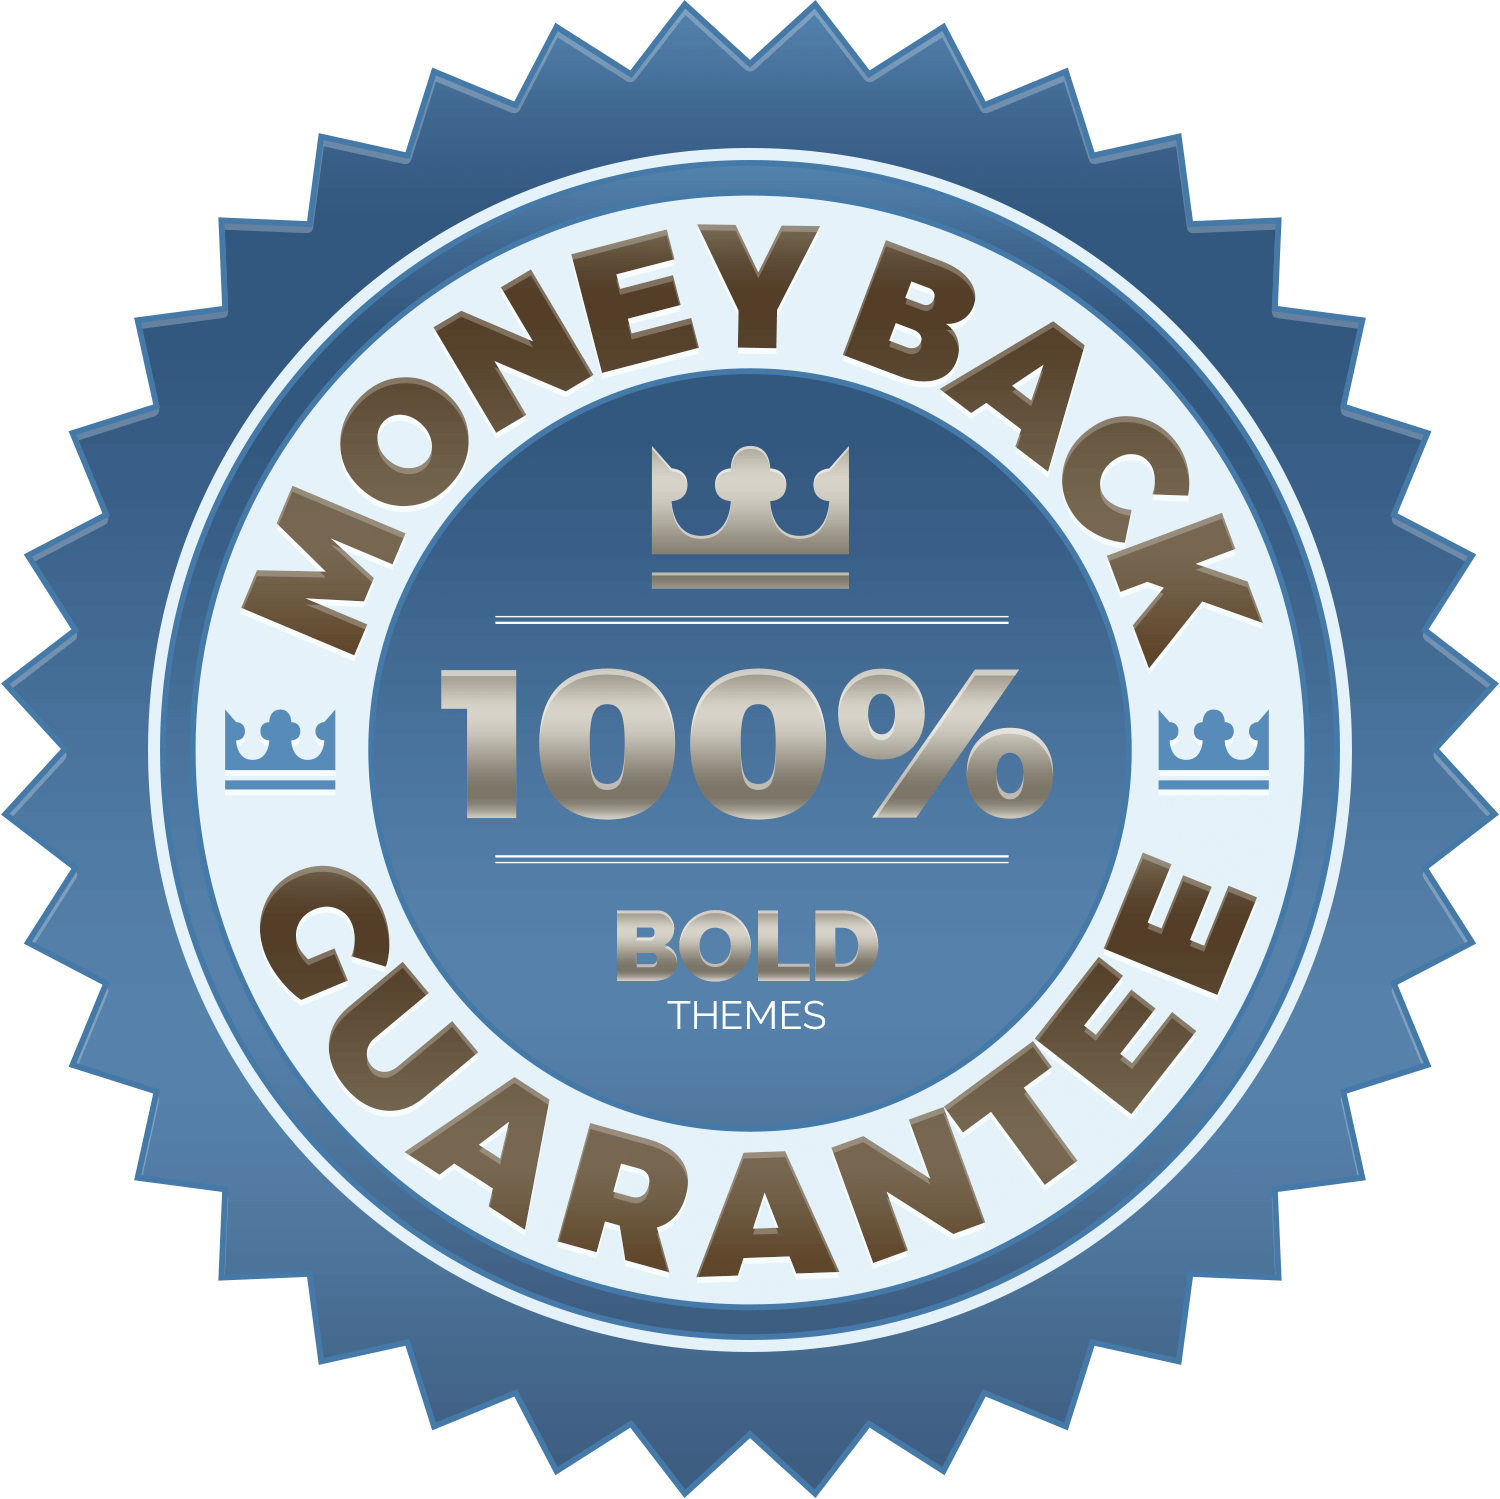 https://ra-zoom.kz/wp-content/uploads/2017/05/Money-back-guarantee.png